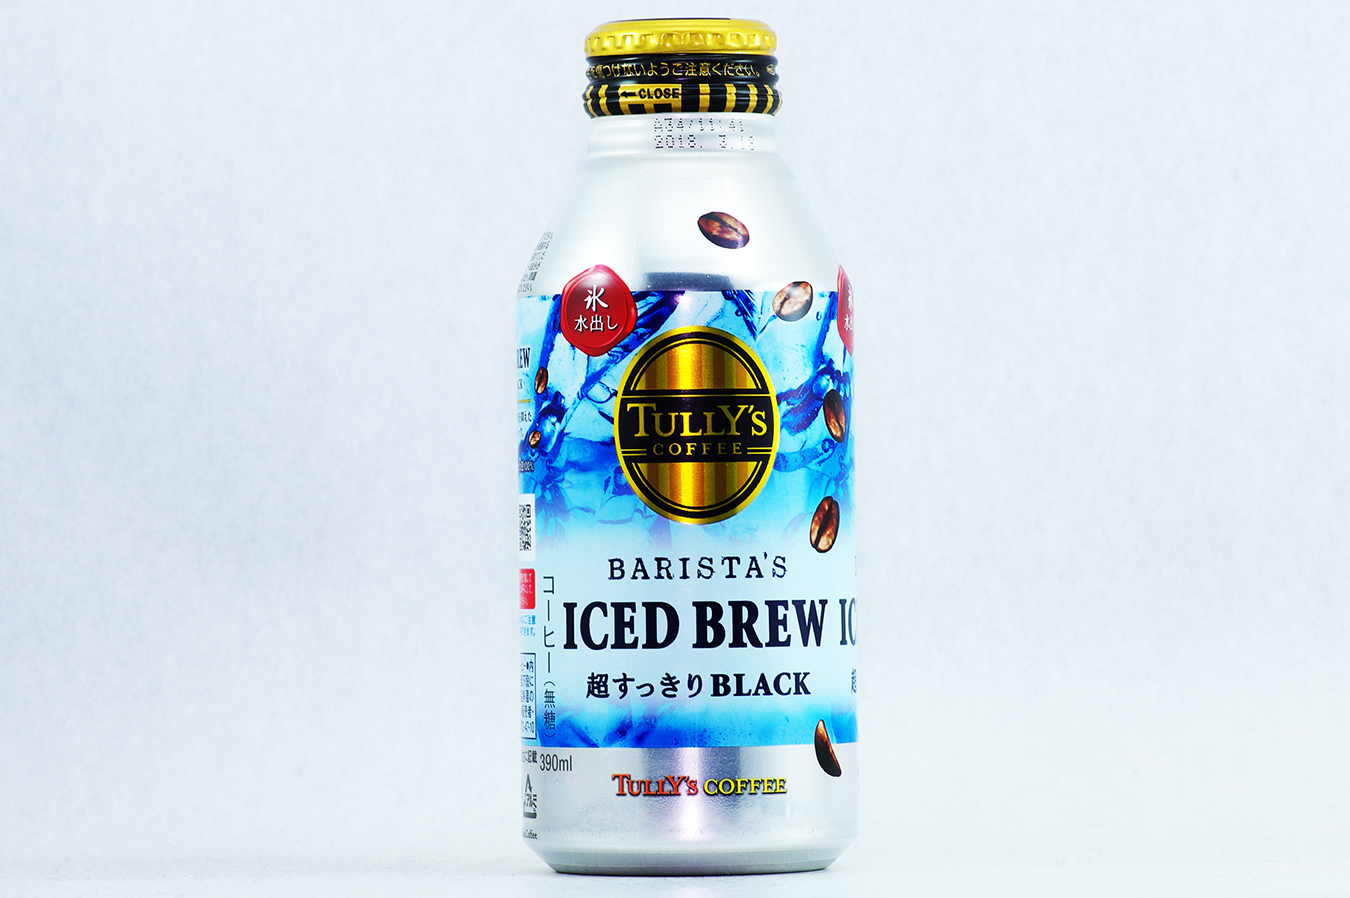 TULLY'S COFFEE BARISTA'S ICED BREW 2017年4月